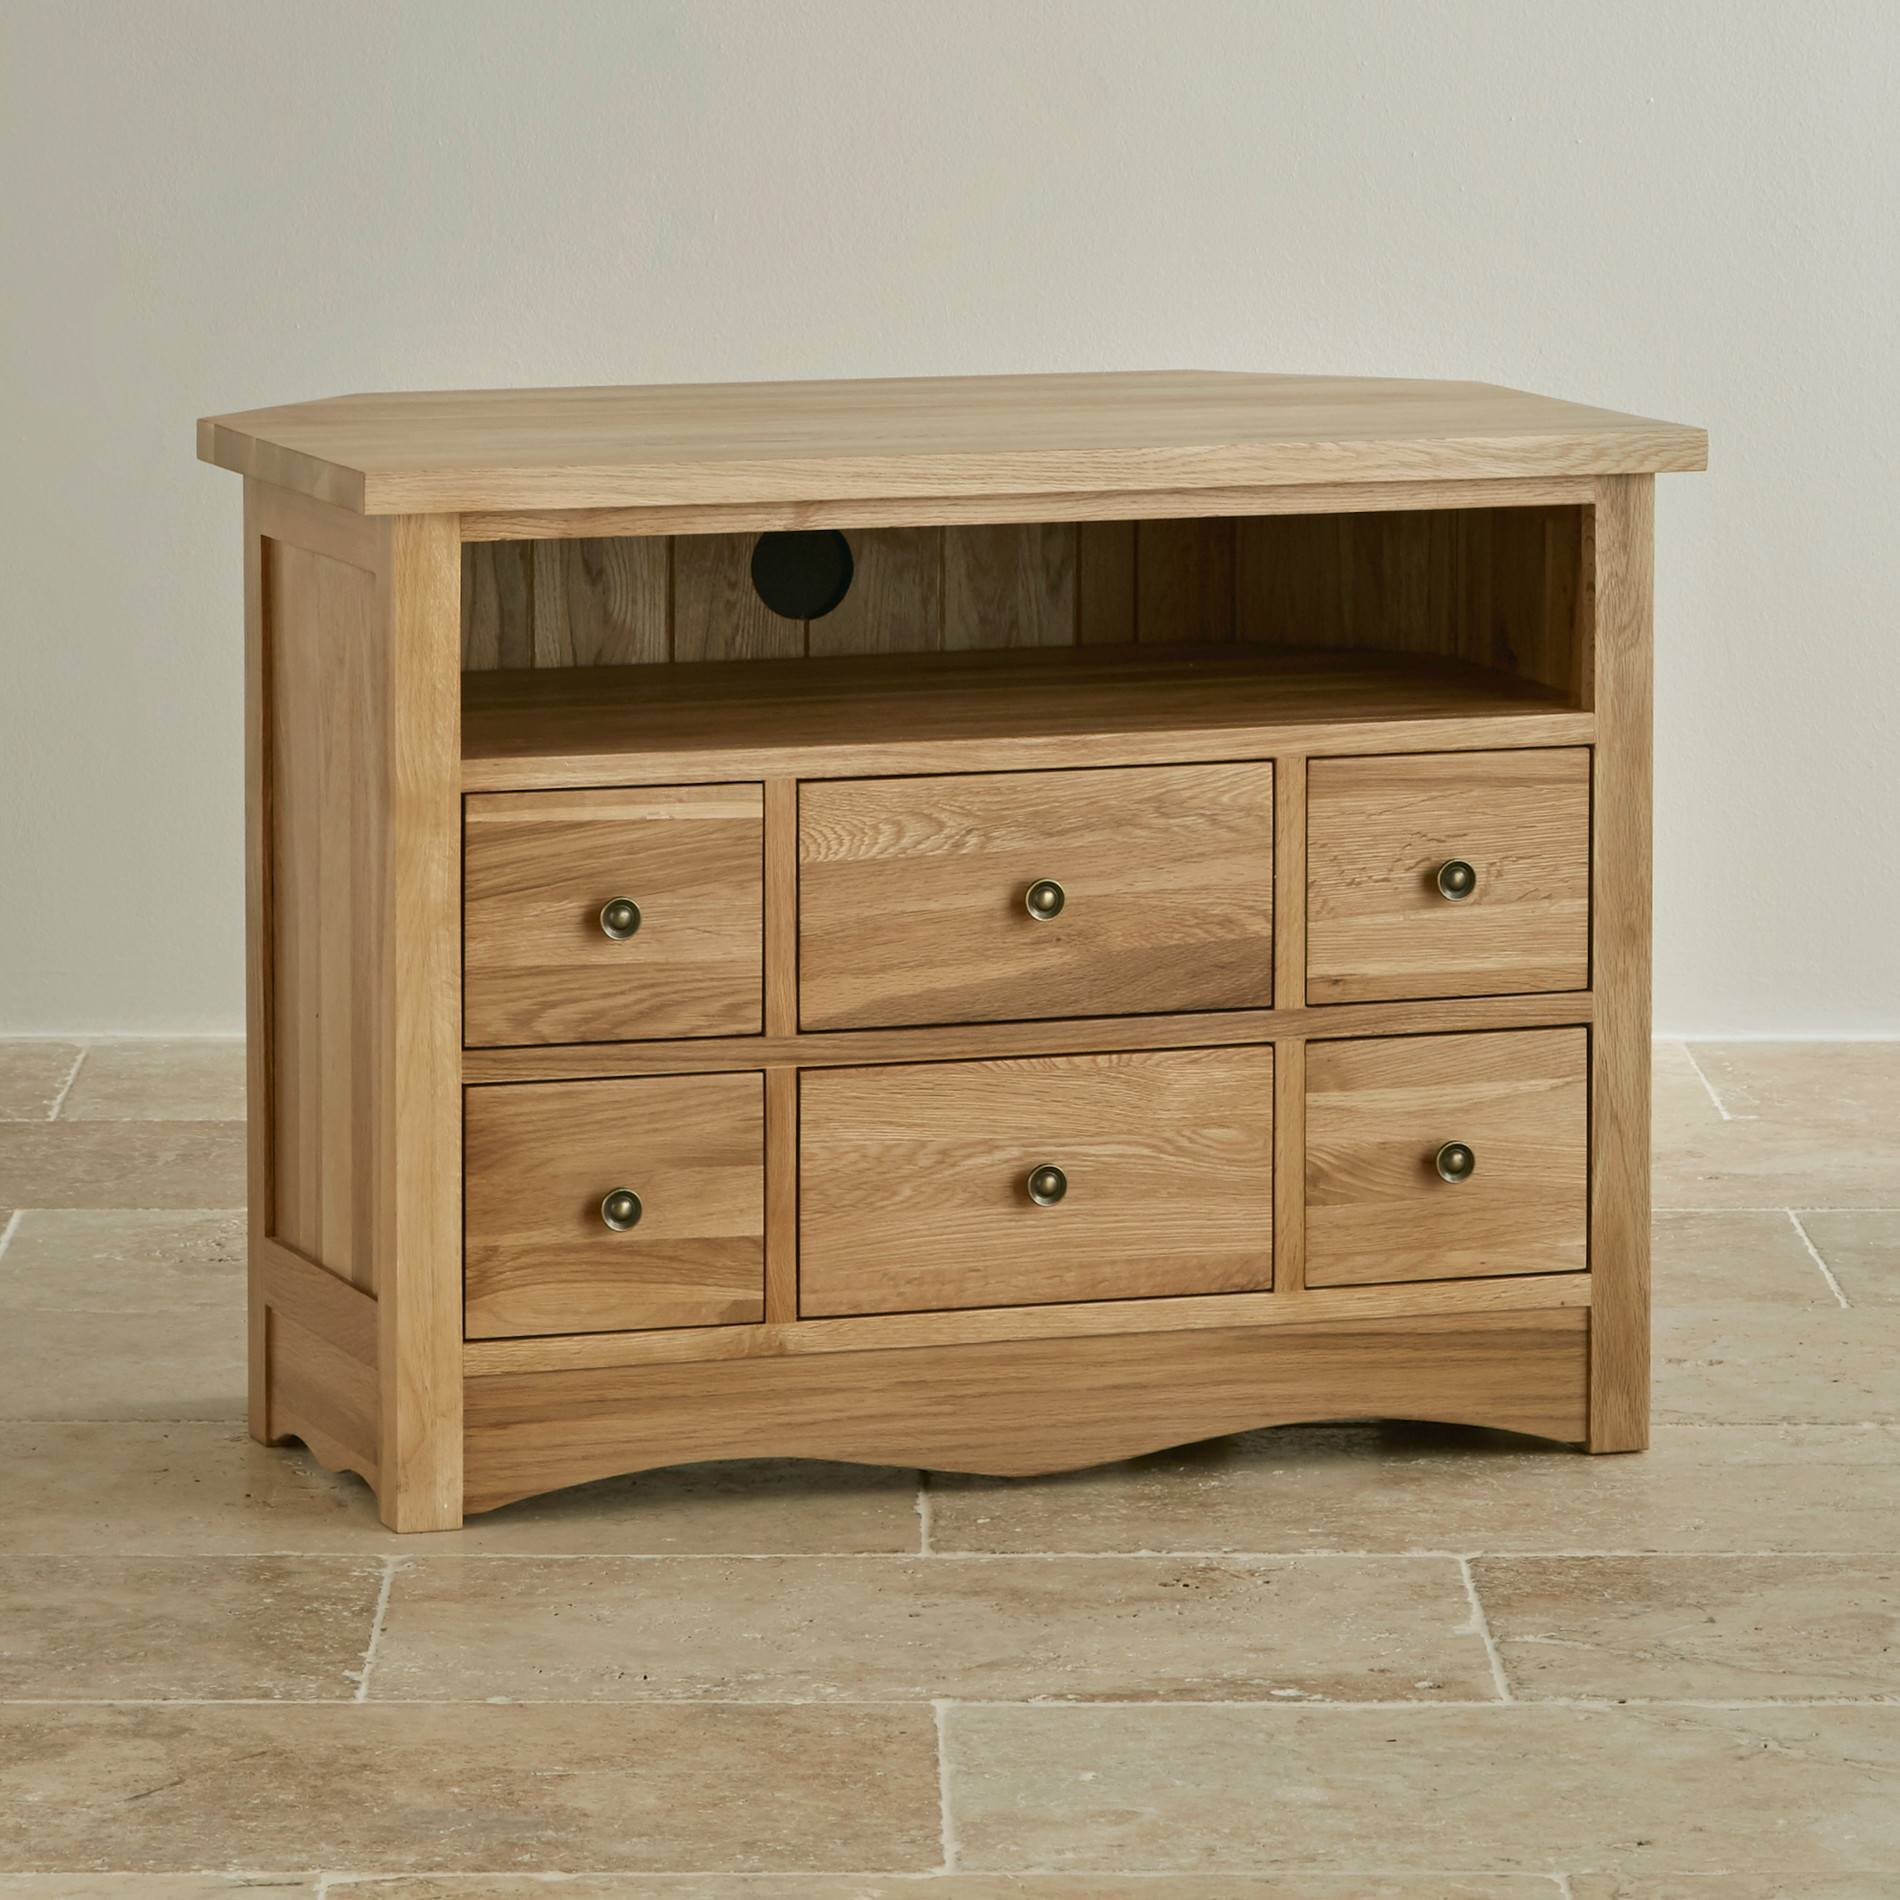 Cairo Corner Tv Cabinet In Natural Solid Oak | Oak Furniture Land pertaining to Corner Tv Cabinets (Image 3 of 15)